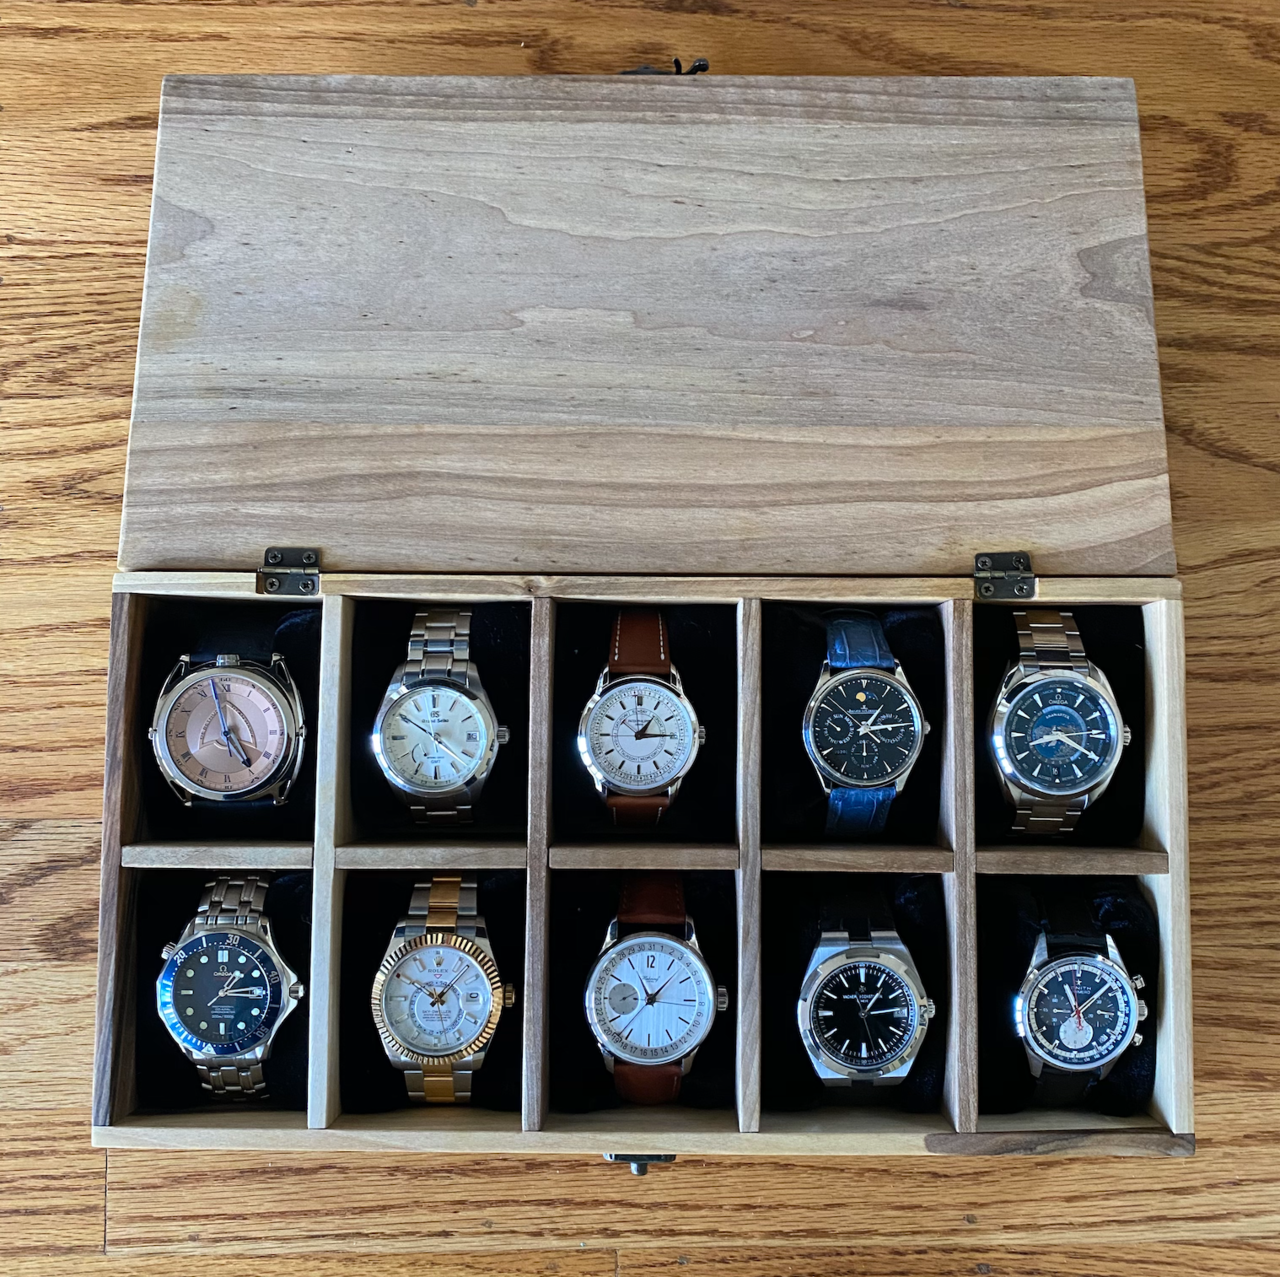 My Watch Collecting Journey